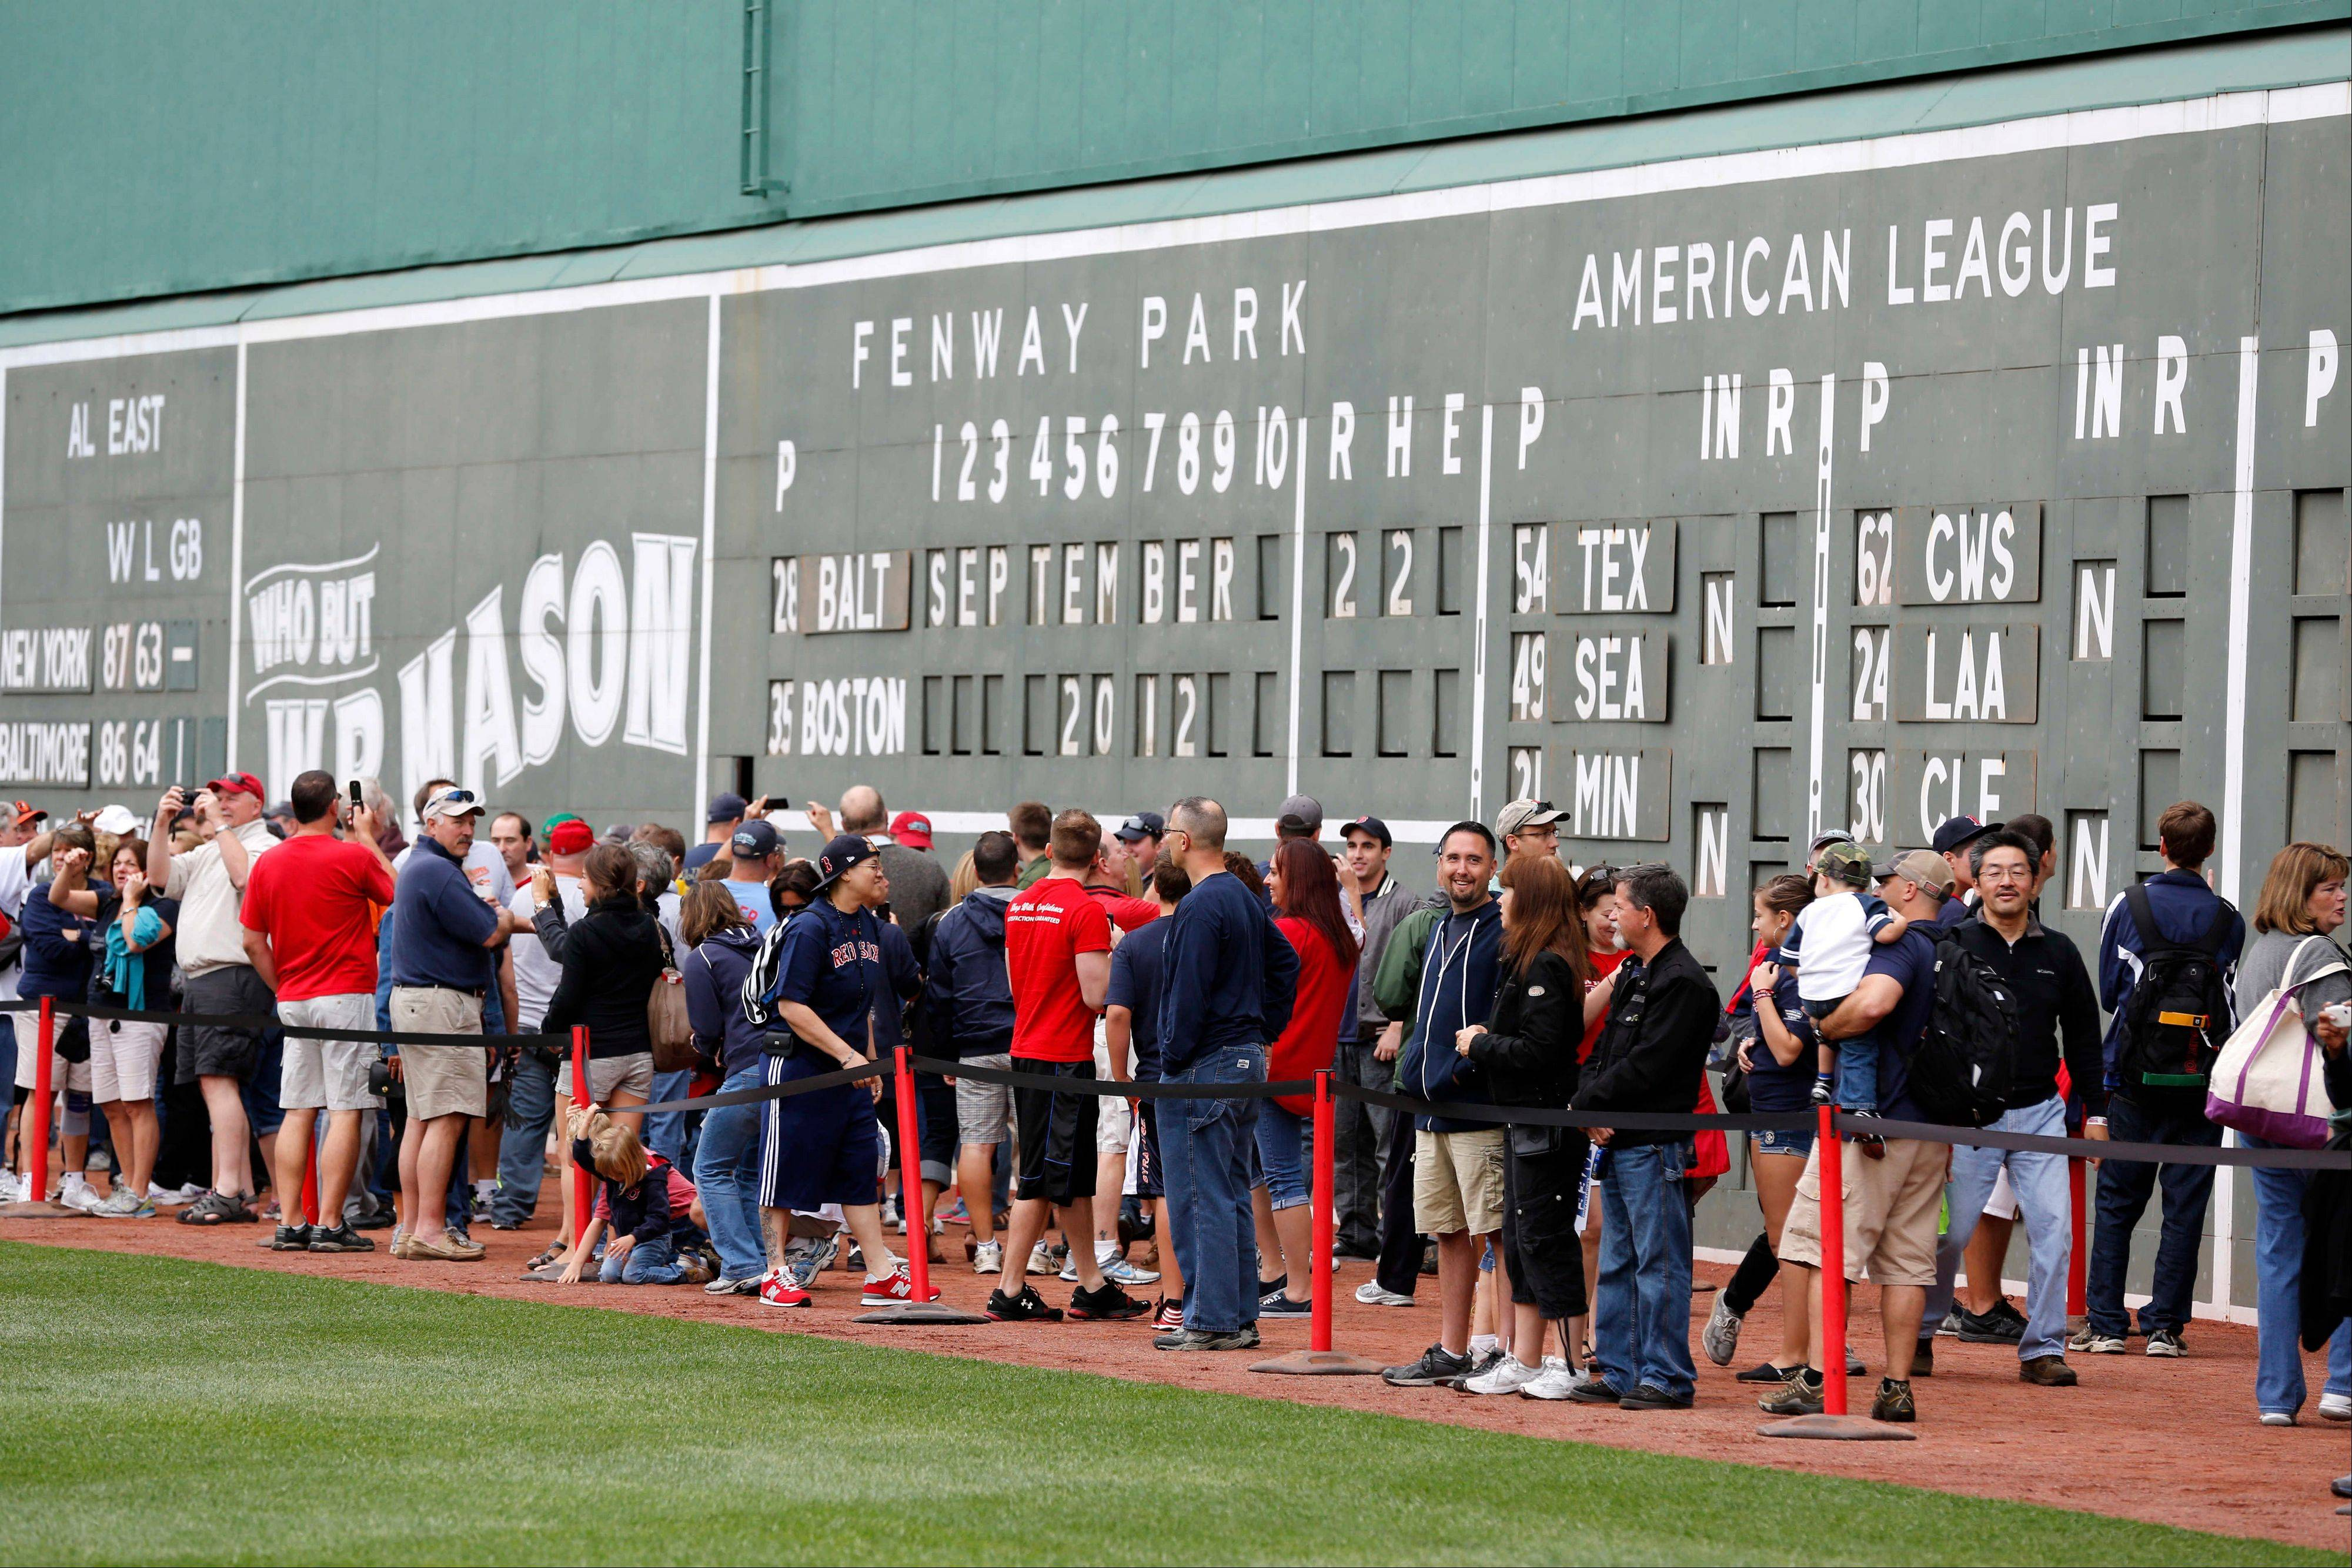 Fans stand in front of the Green Monster scoreboard during On Field Photo Day at Fenway Park in Boston before a baseball game between the Boston Red Sox and the Baltimore Orioles.